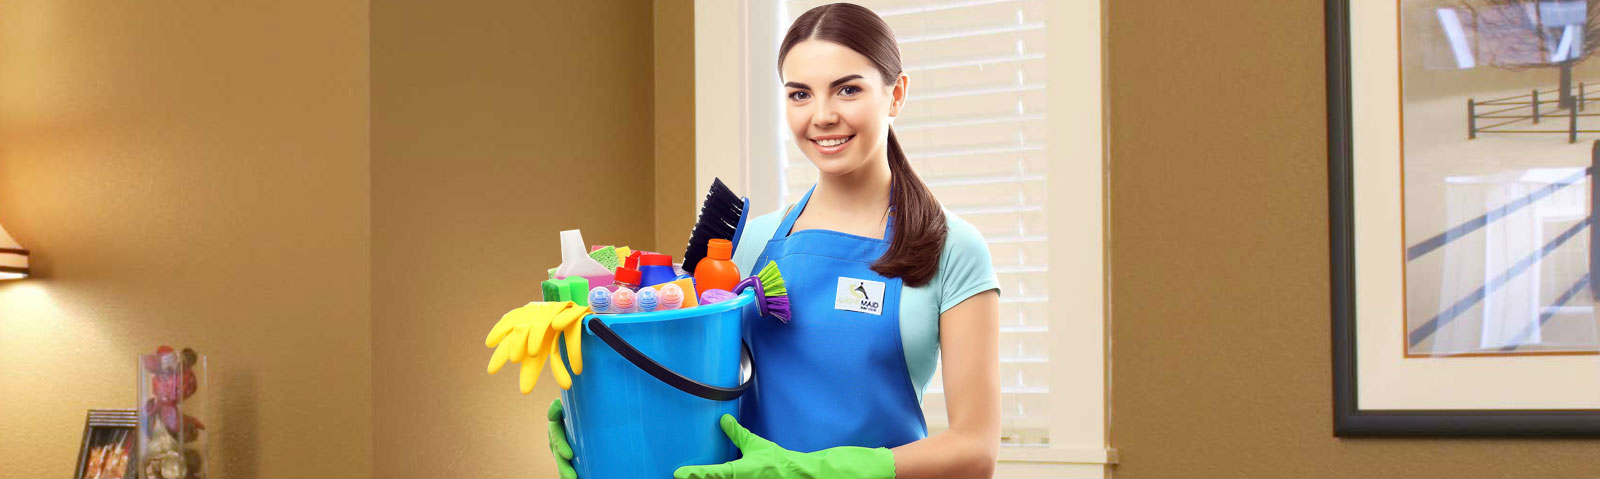 best cleaners in qatar